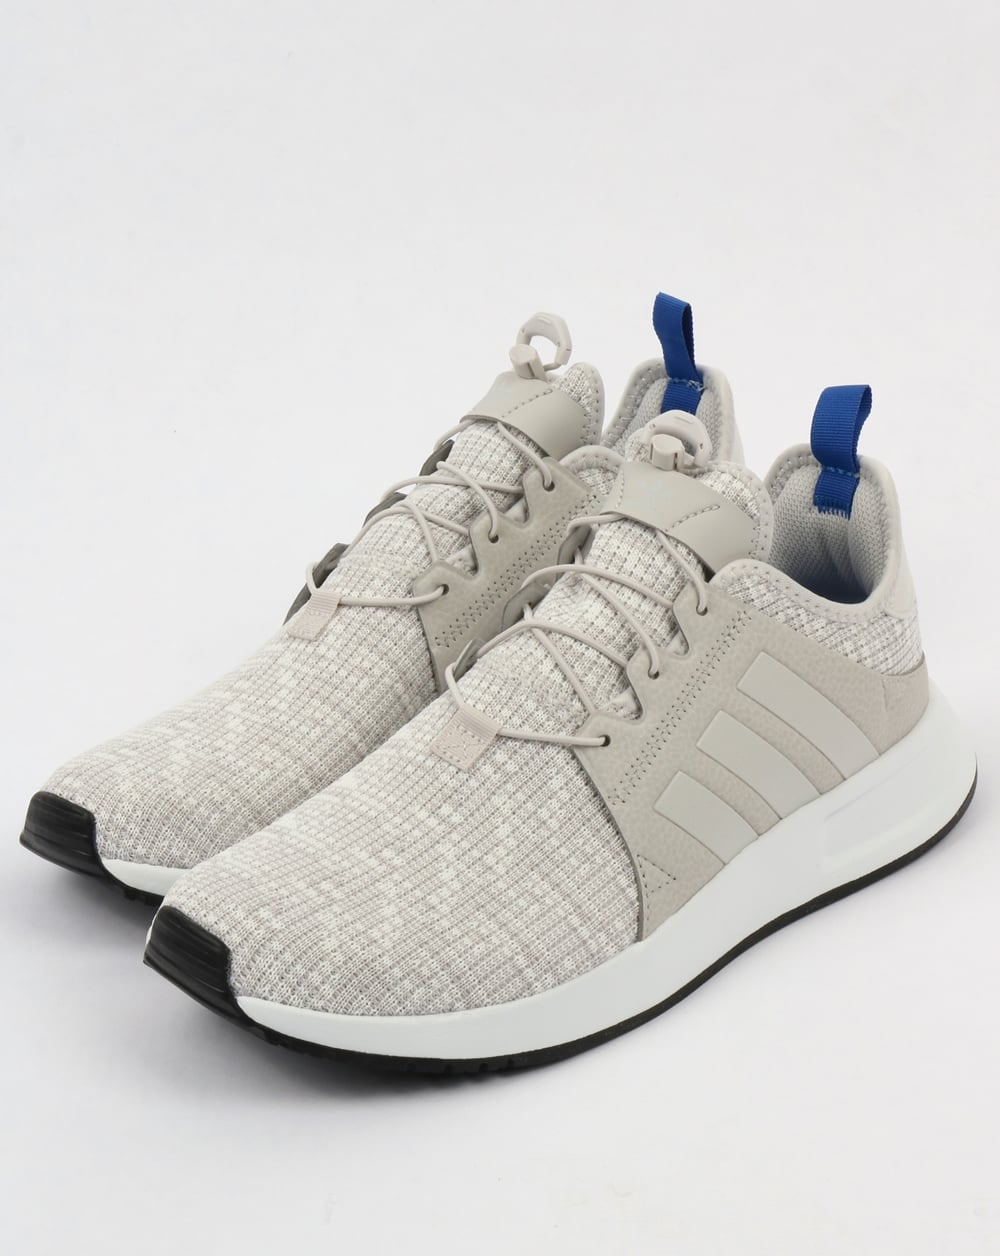 Adidas XPLR Trainers Grey/Grey/Blue